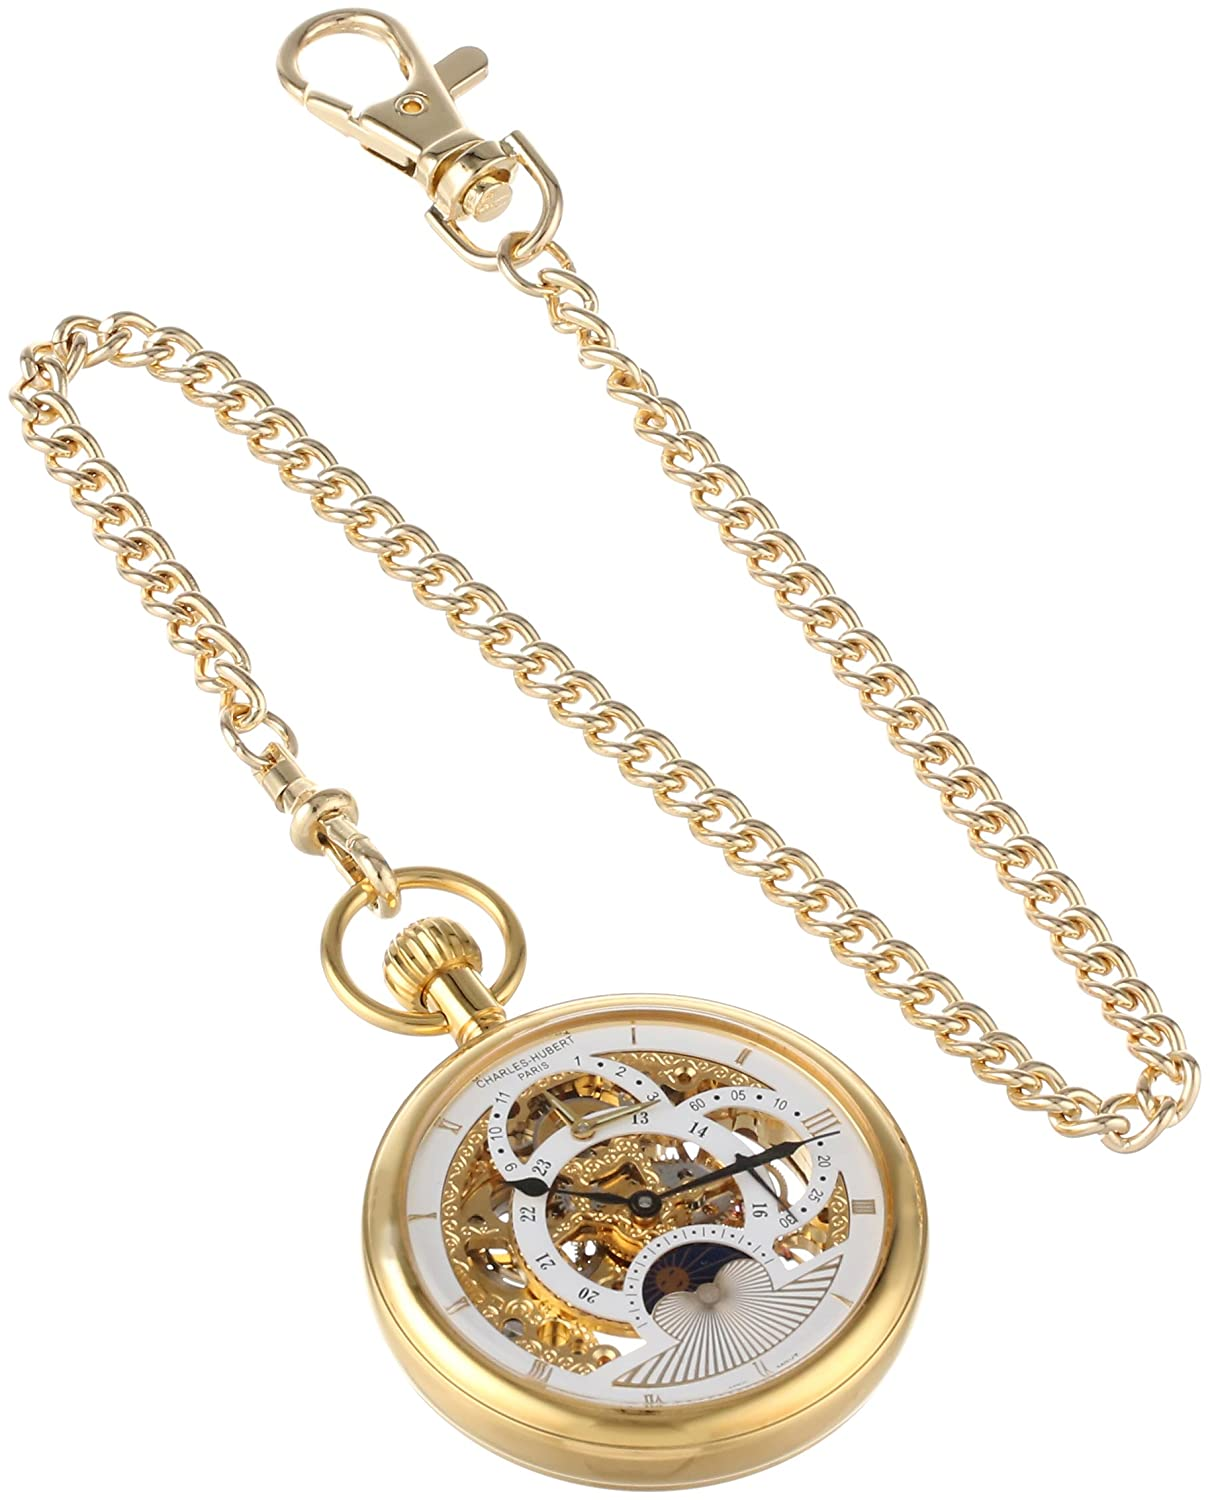 owl s time necklace product jfeindesigns the got watches whooo whooos watchesowl watch